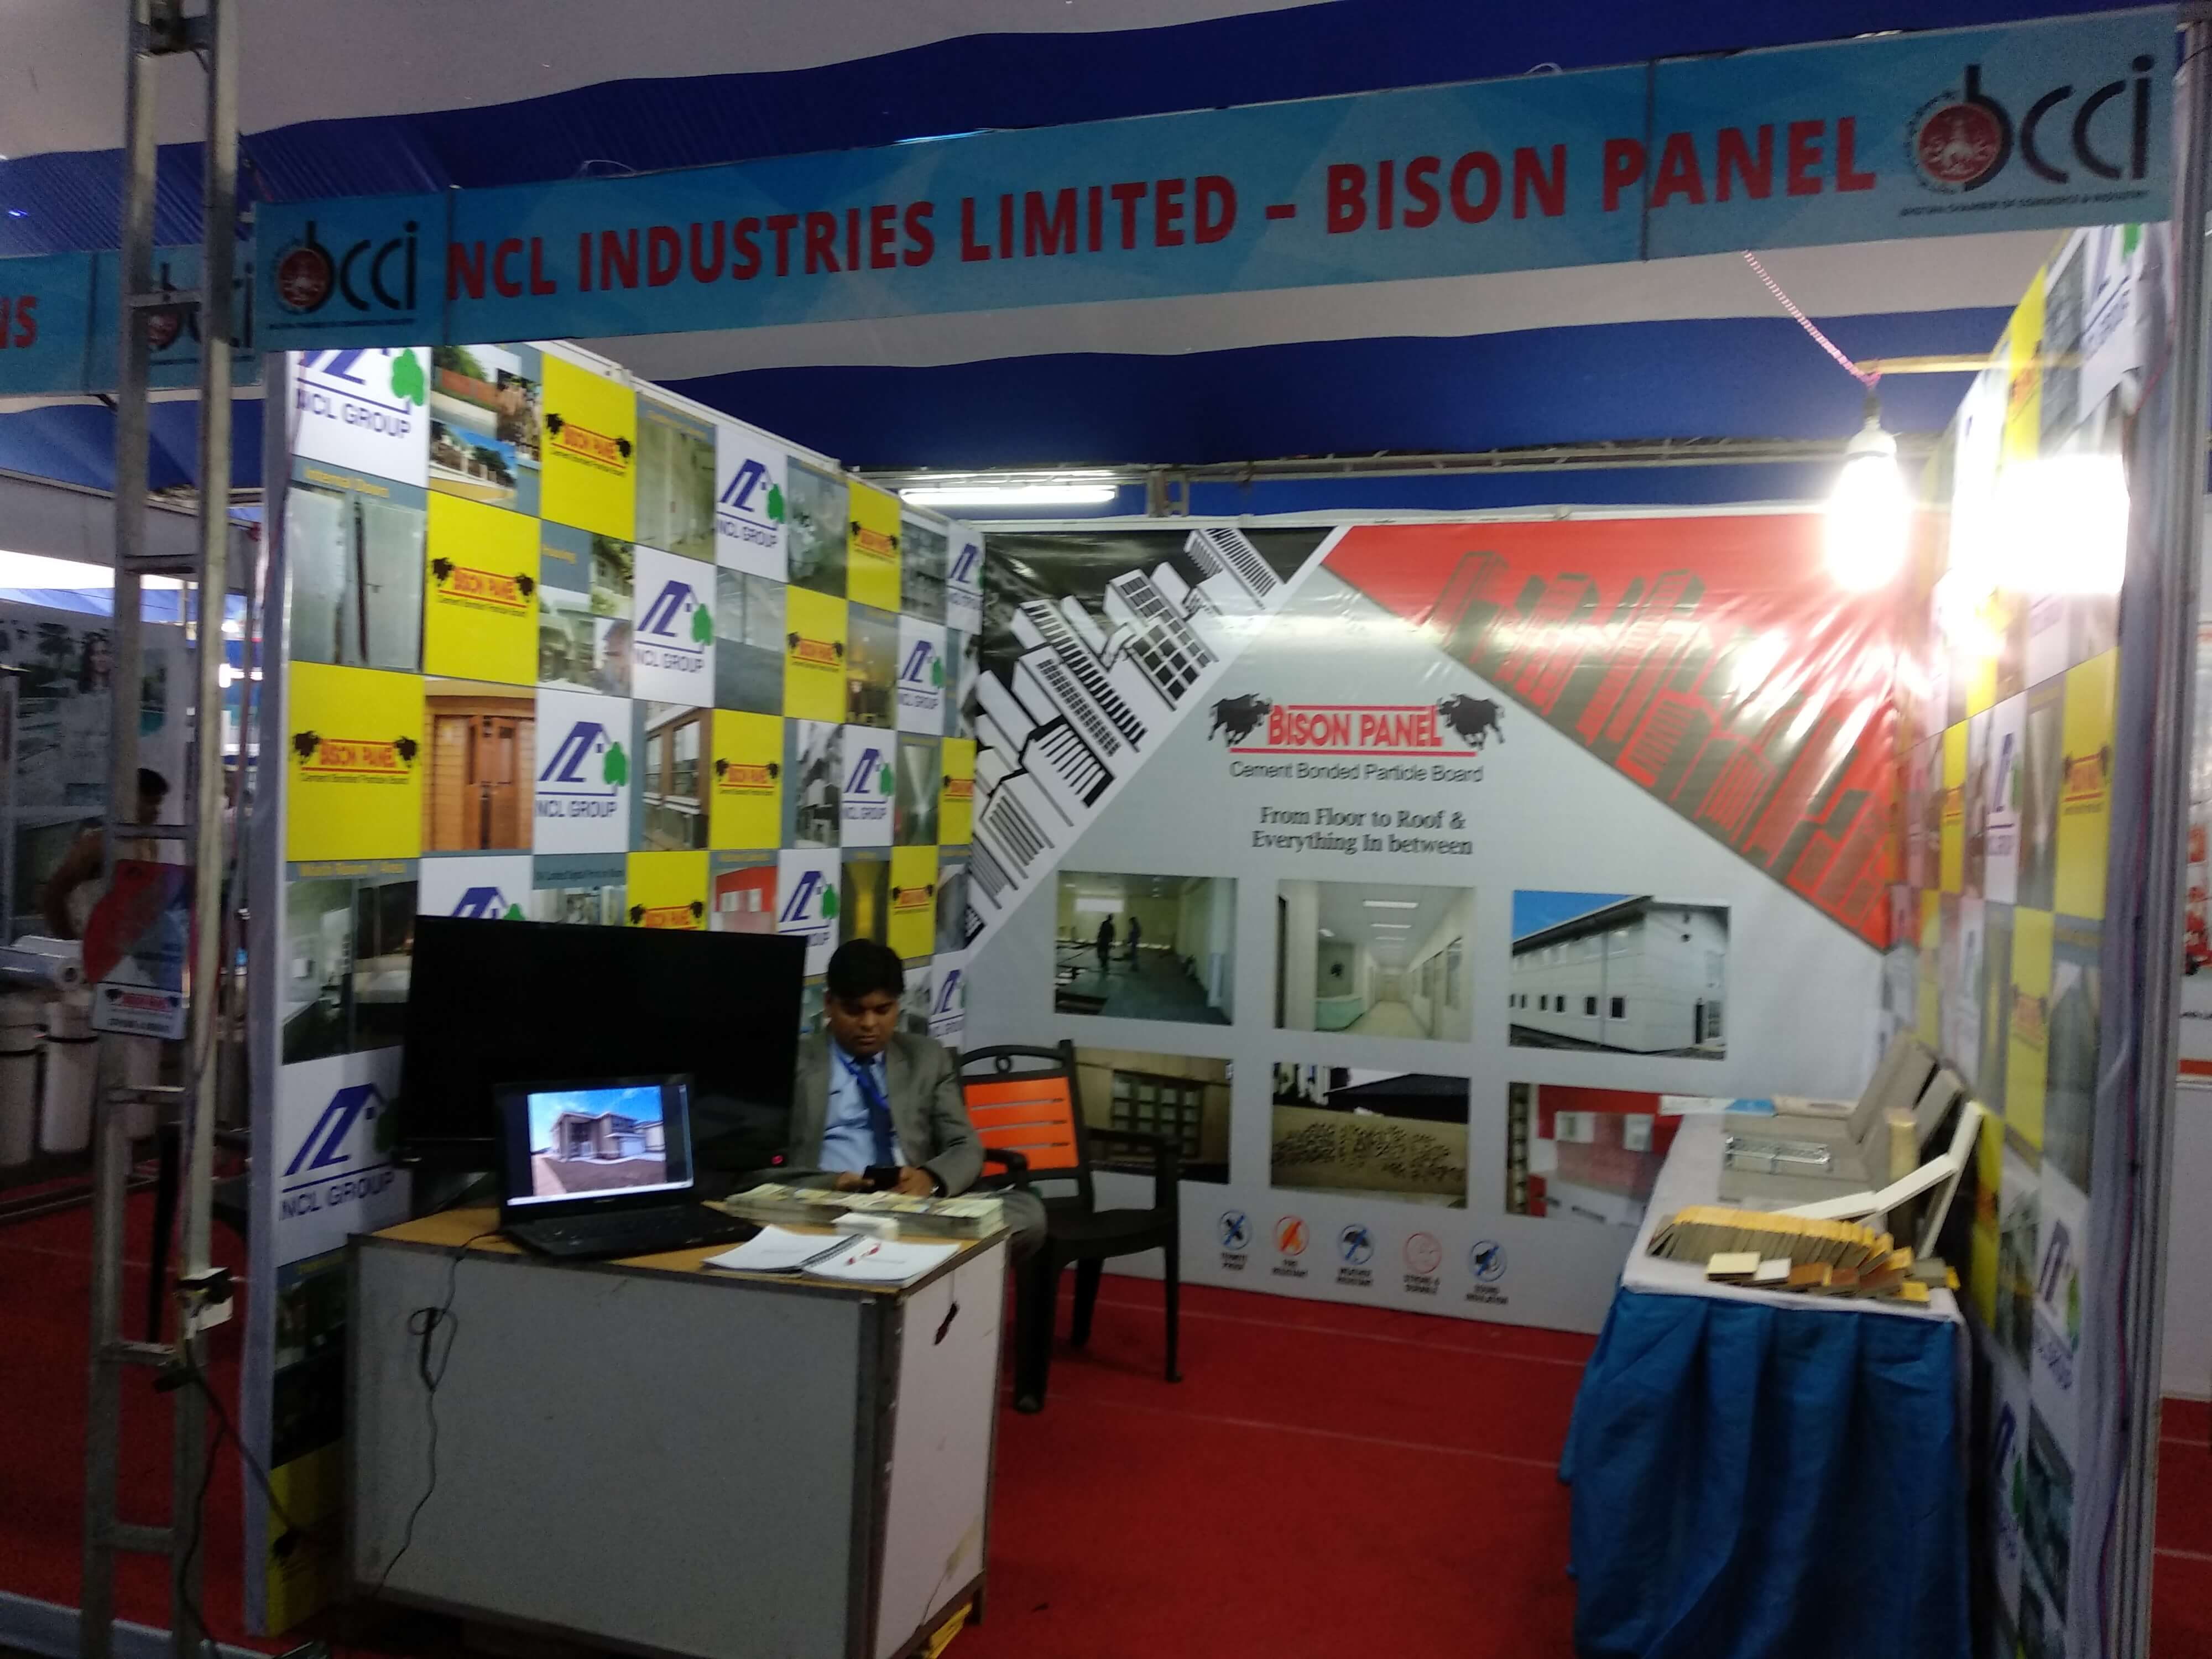 Construction_Expo_2018_-_Participants_from_INDIA,_NEPAL,_BANGALADESH_and_BHUTAN<br>1